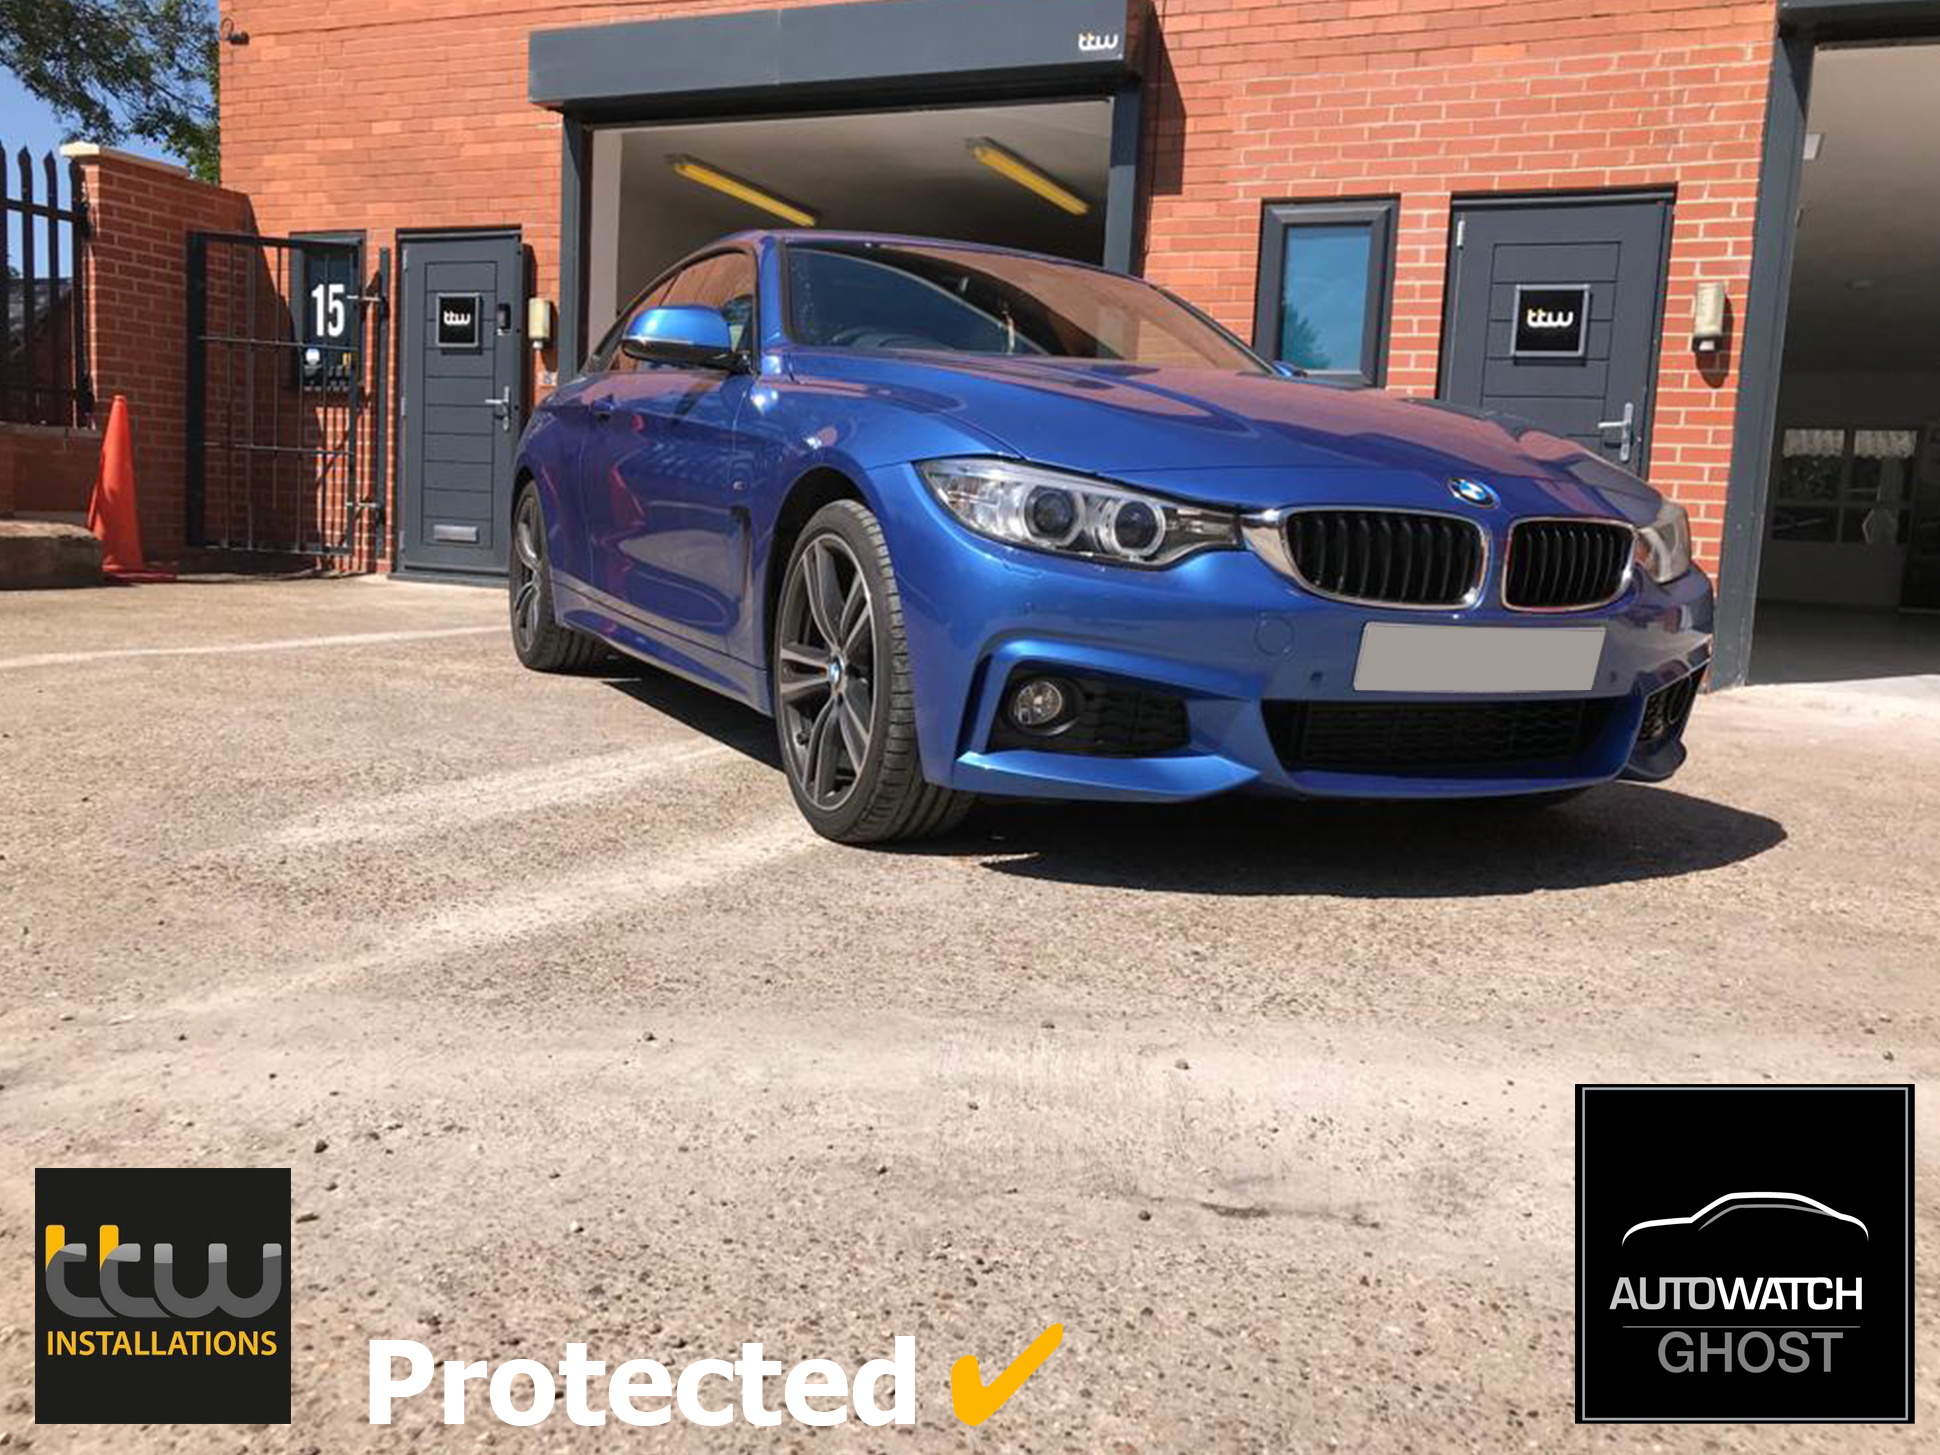 BMW 3 Series Autowatch Ghost 2 protected By TTW Installations